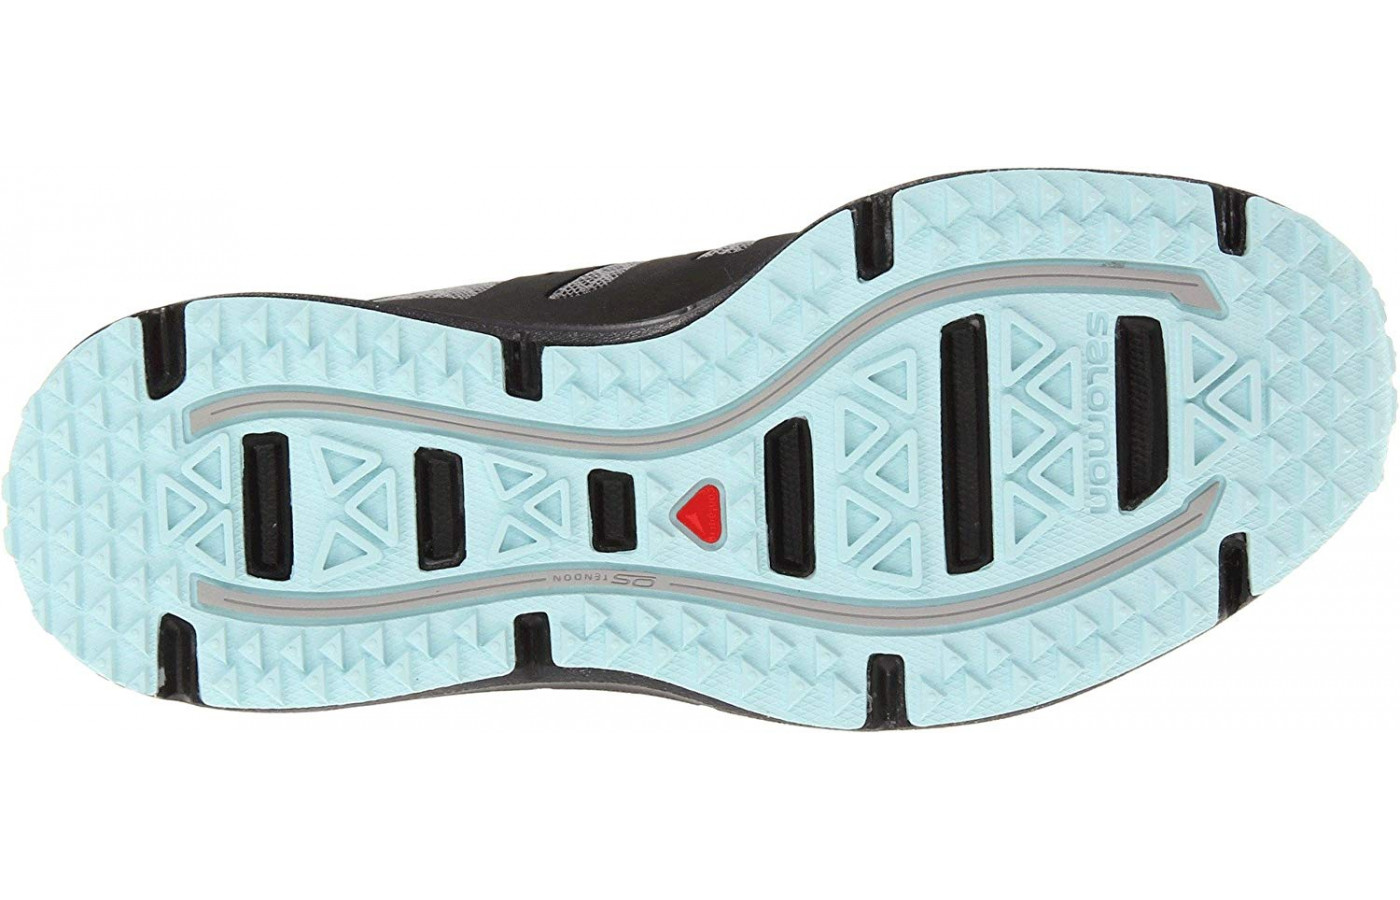 The Kalalau's non-marking Contagrip rubber outsole gives durable traction